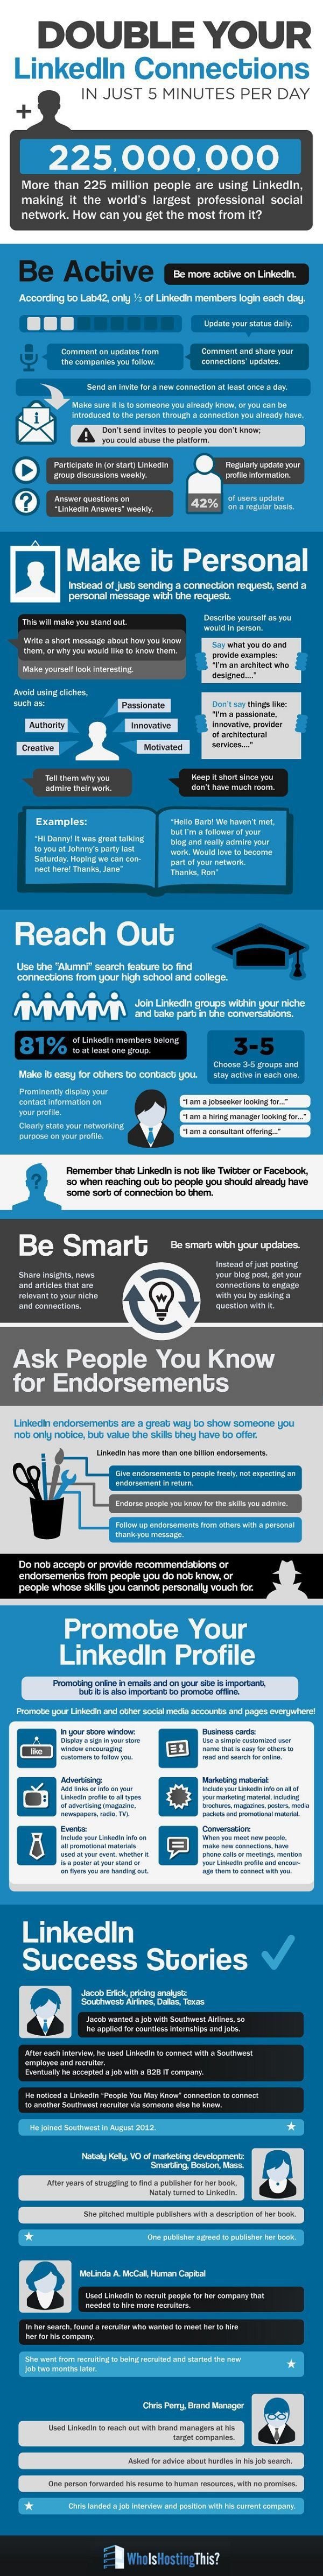 Double your Linkedin connections in just 5 minutes per day, by whoishostingthis.com